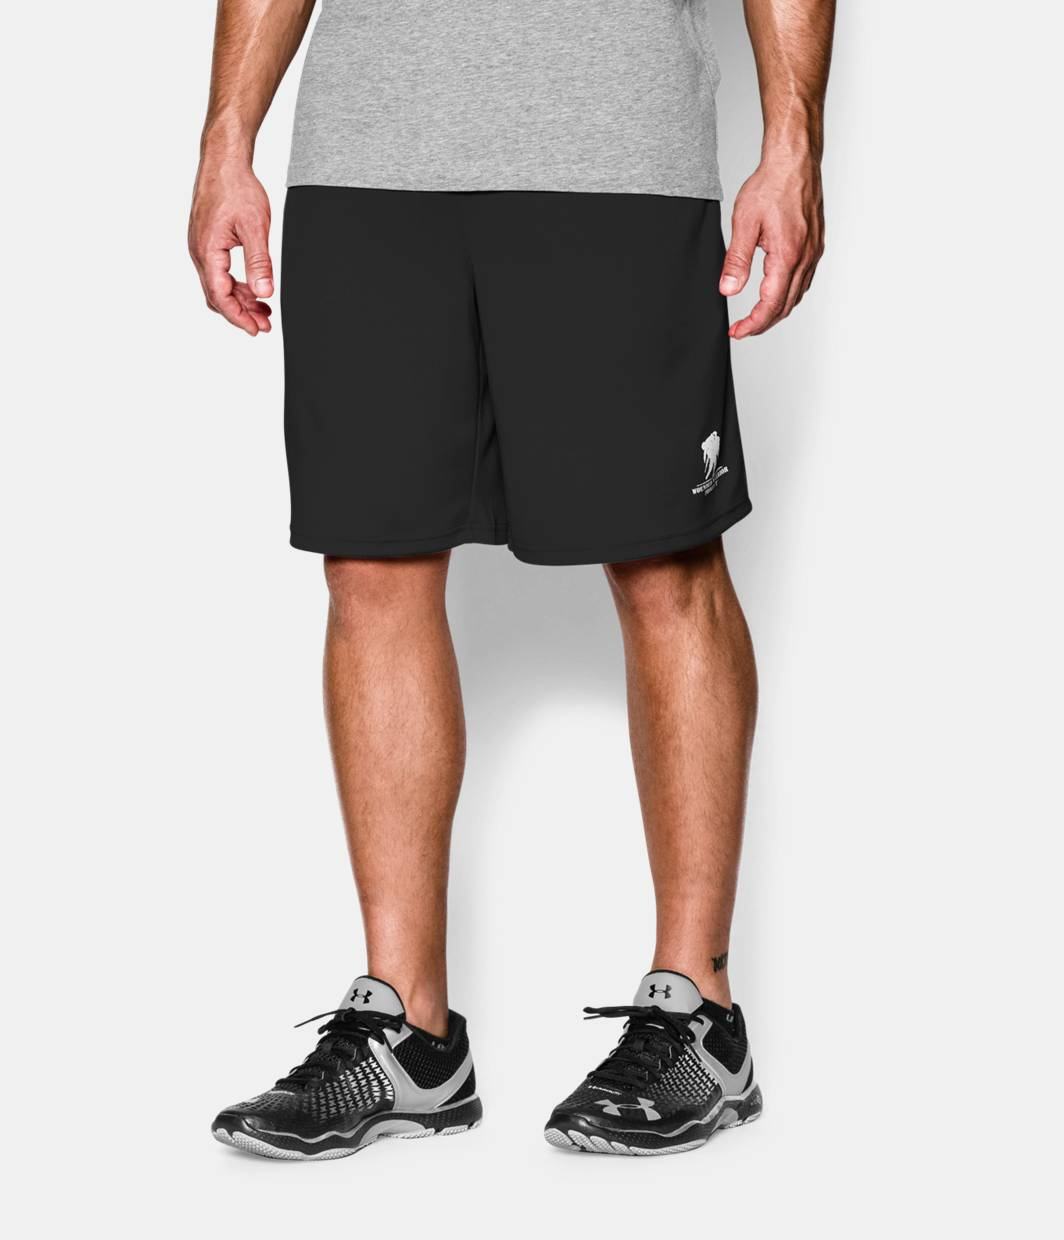 Under Armour 1246315 WWP Training Men's Tactical Shorts